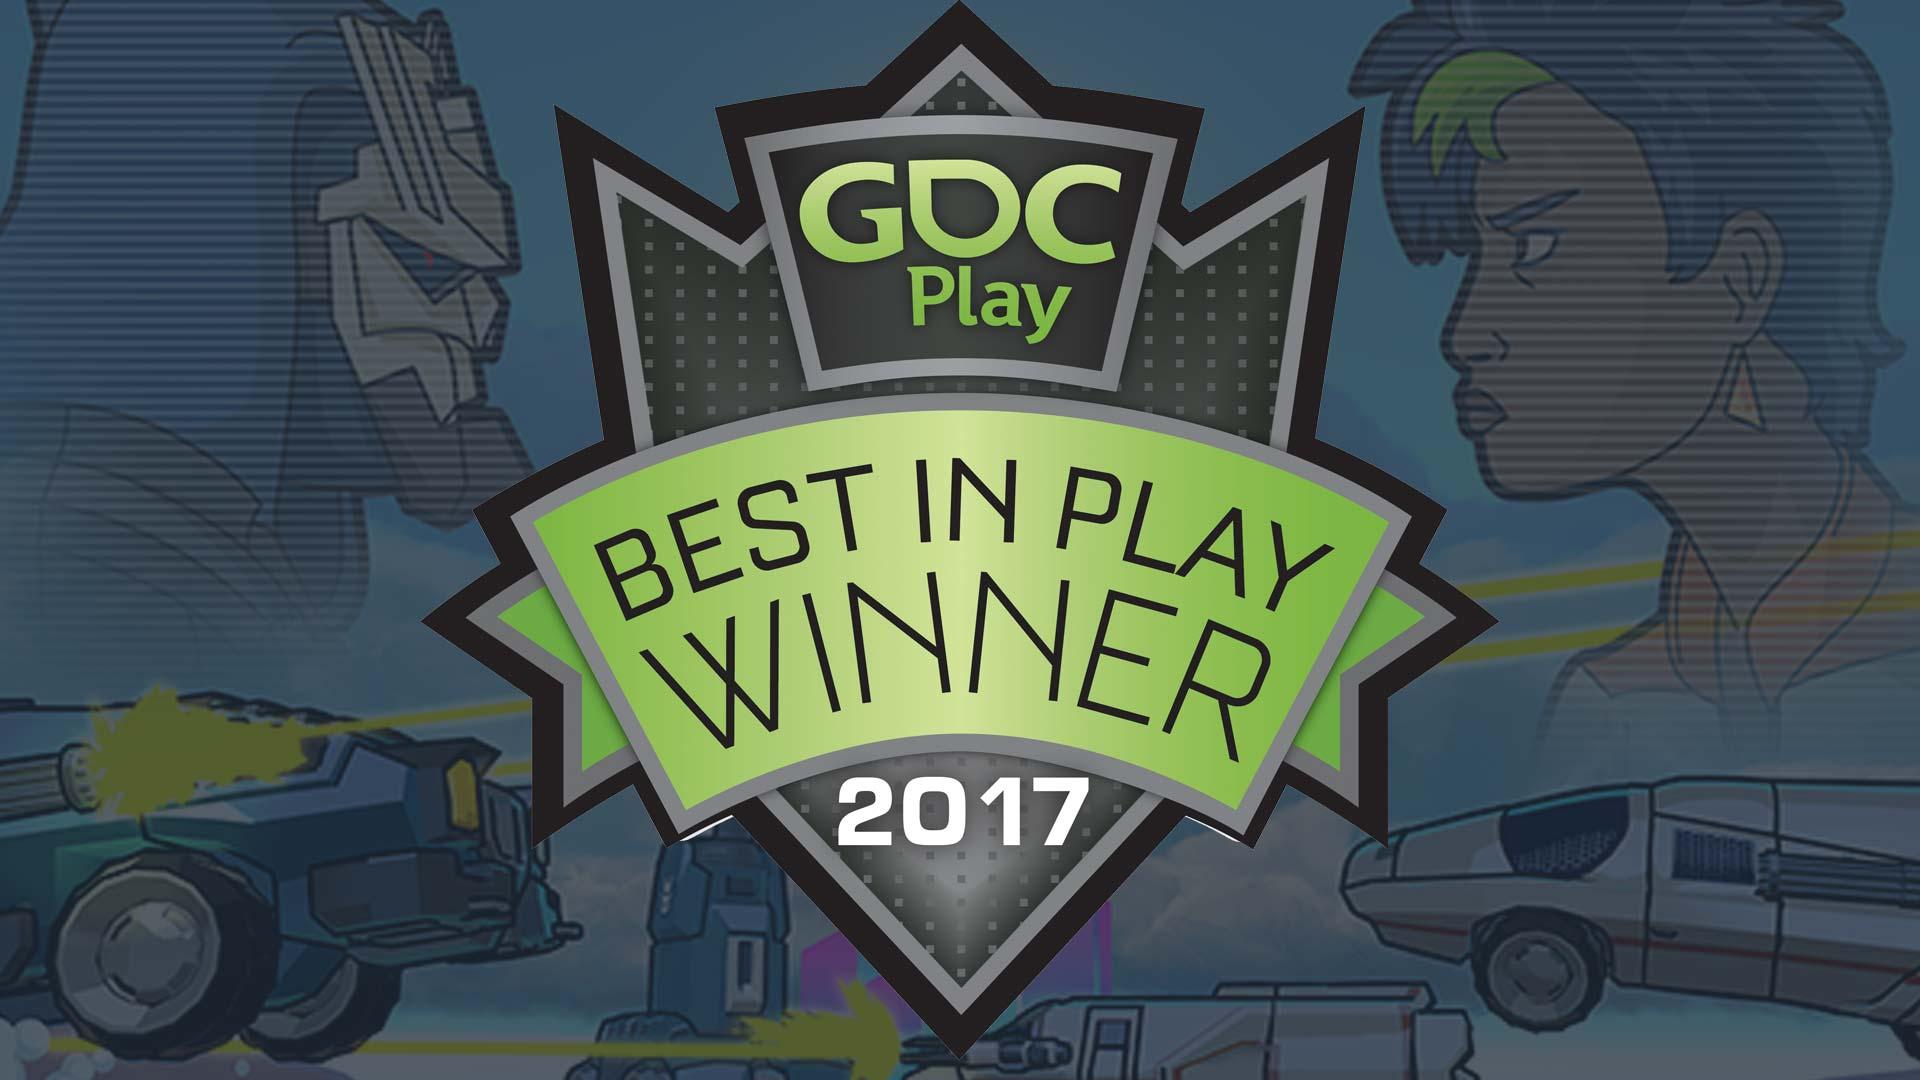 2017 - WINNERBEST IN PLAYfor